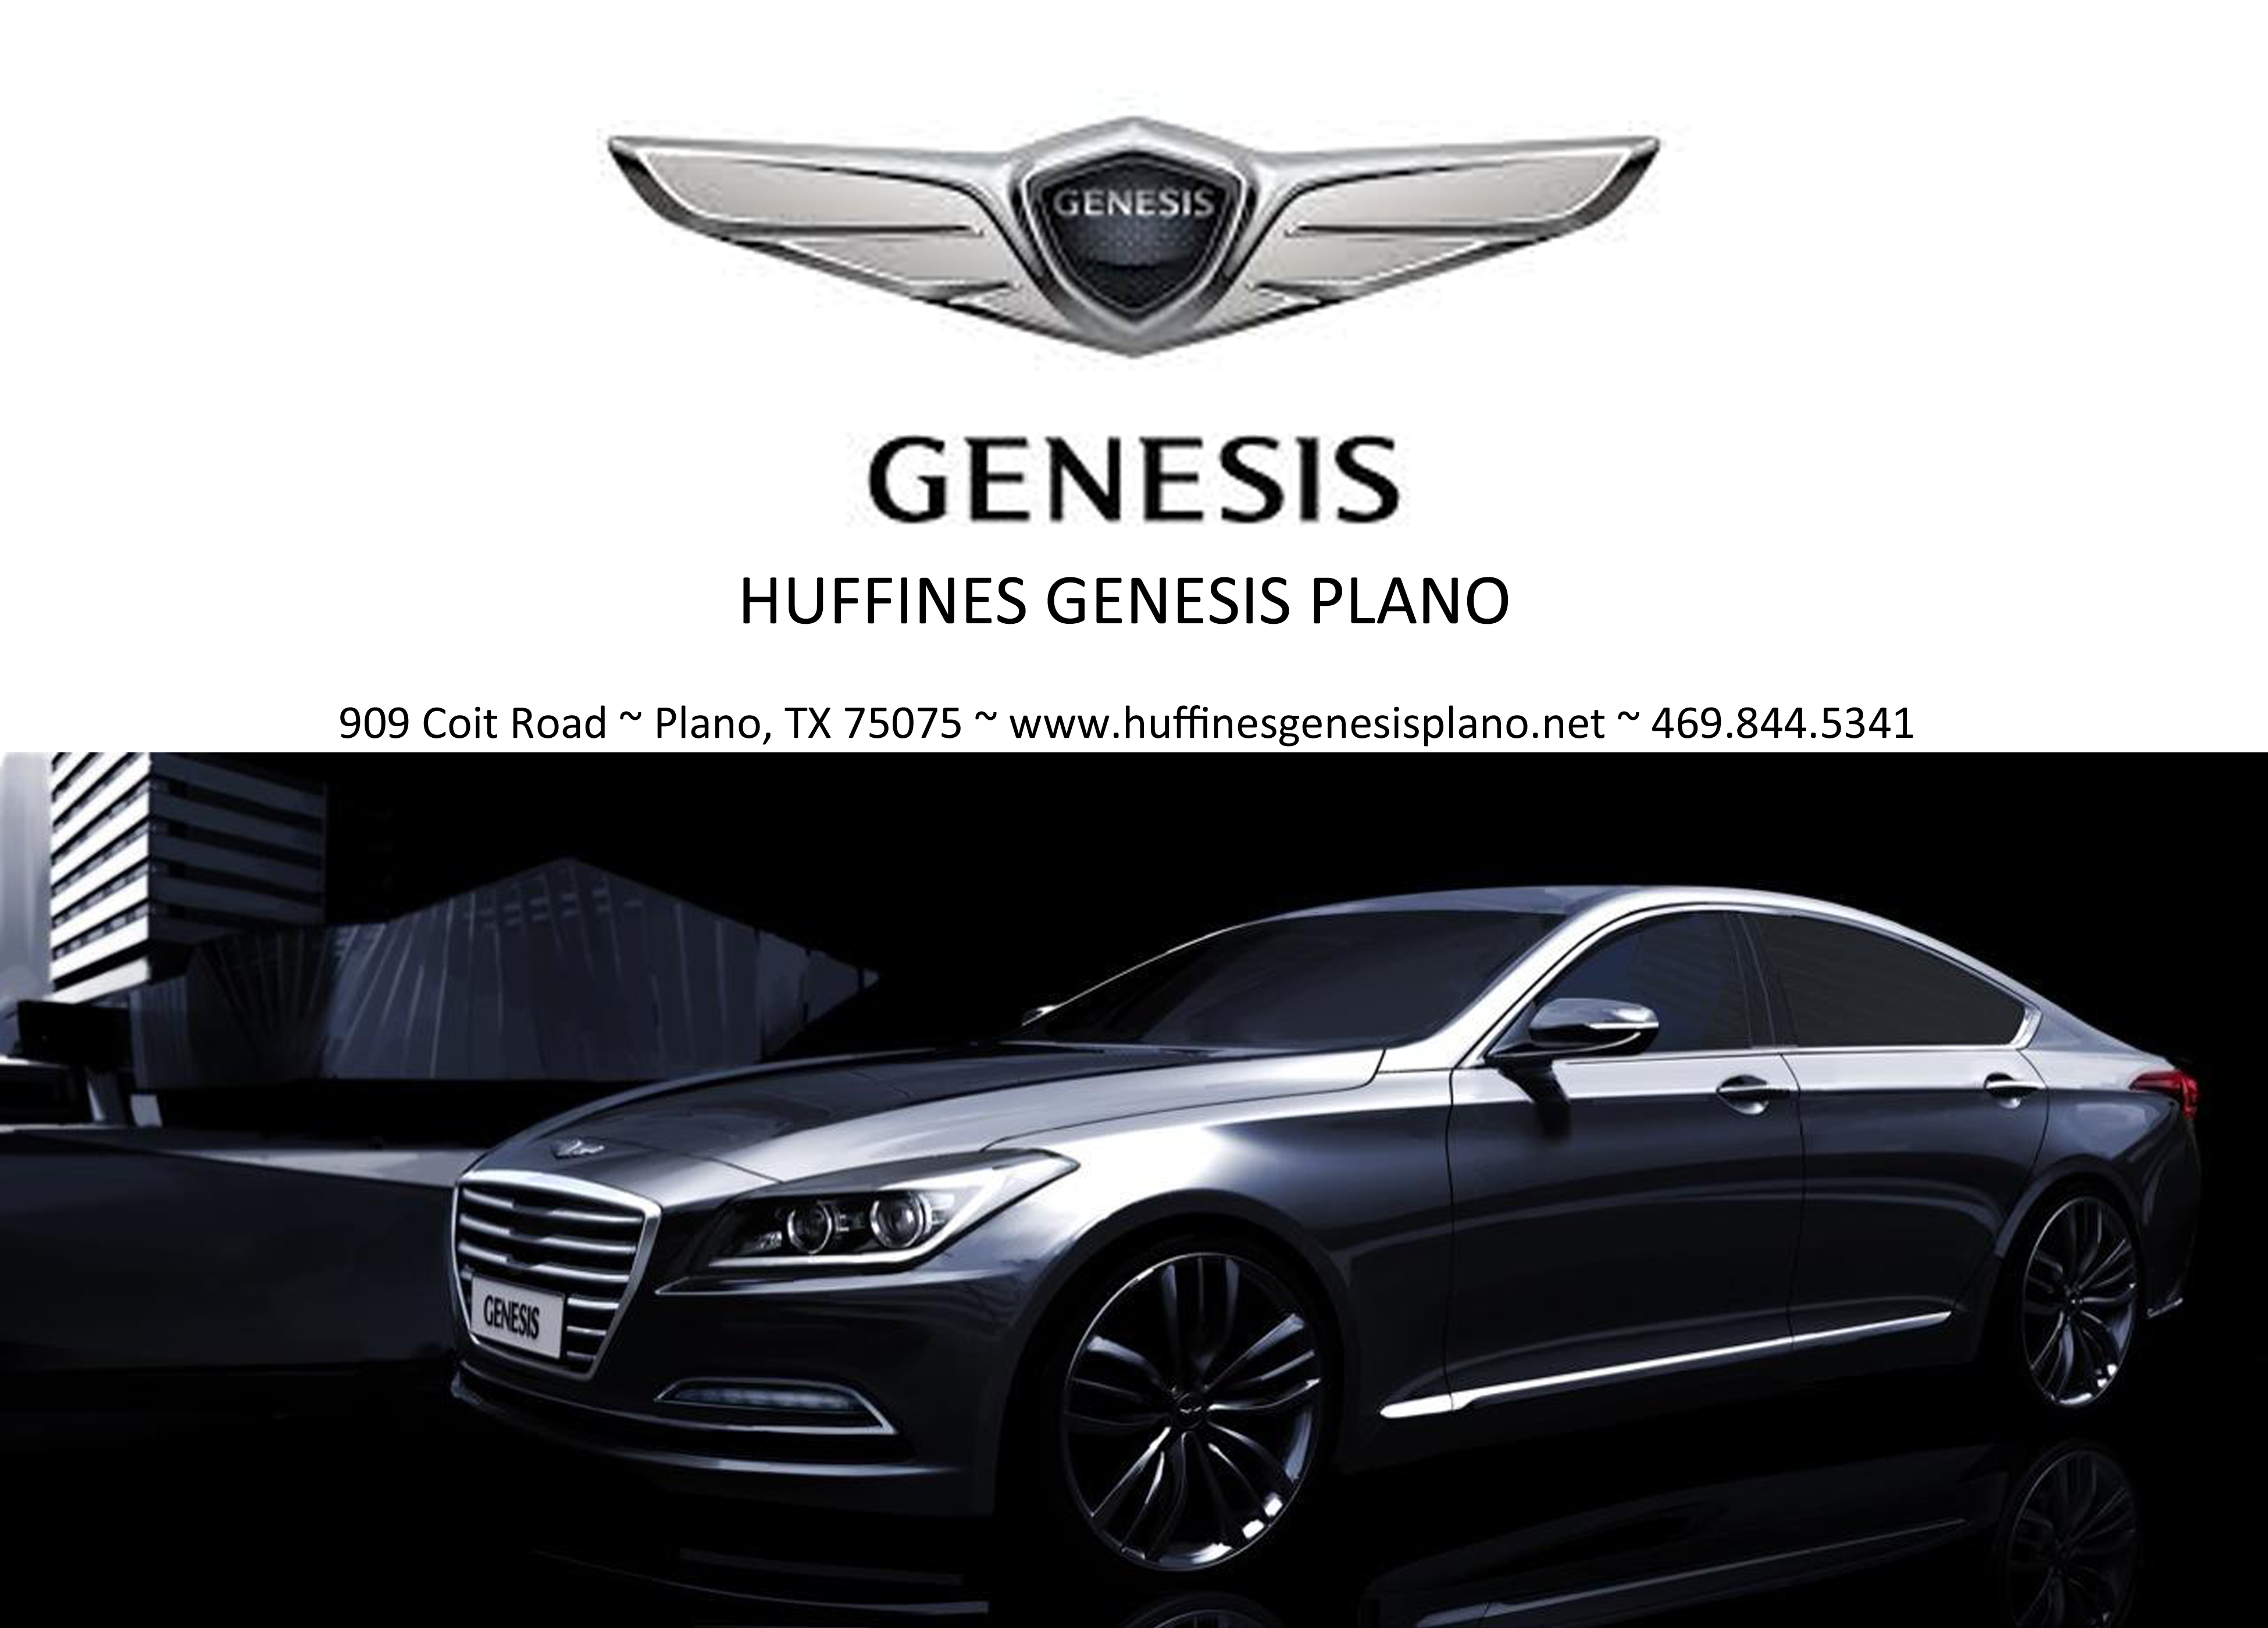 Huffines Genesis Plano Customer Reviews Page 1